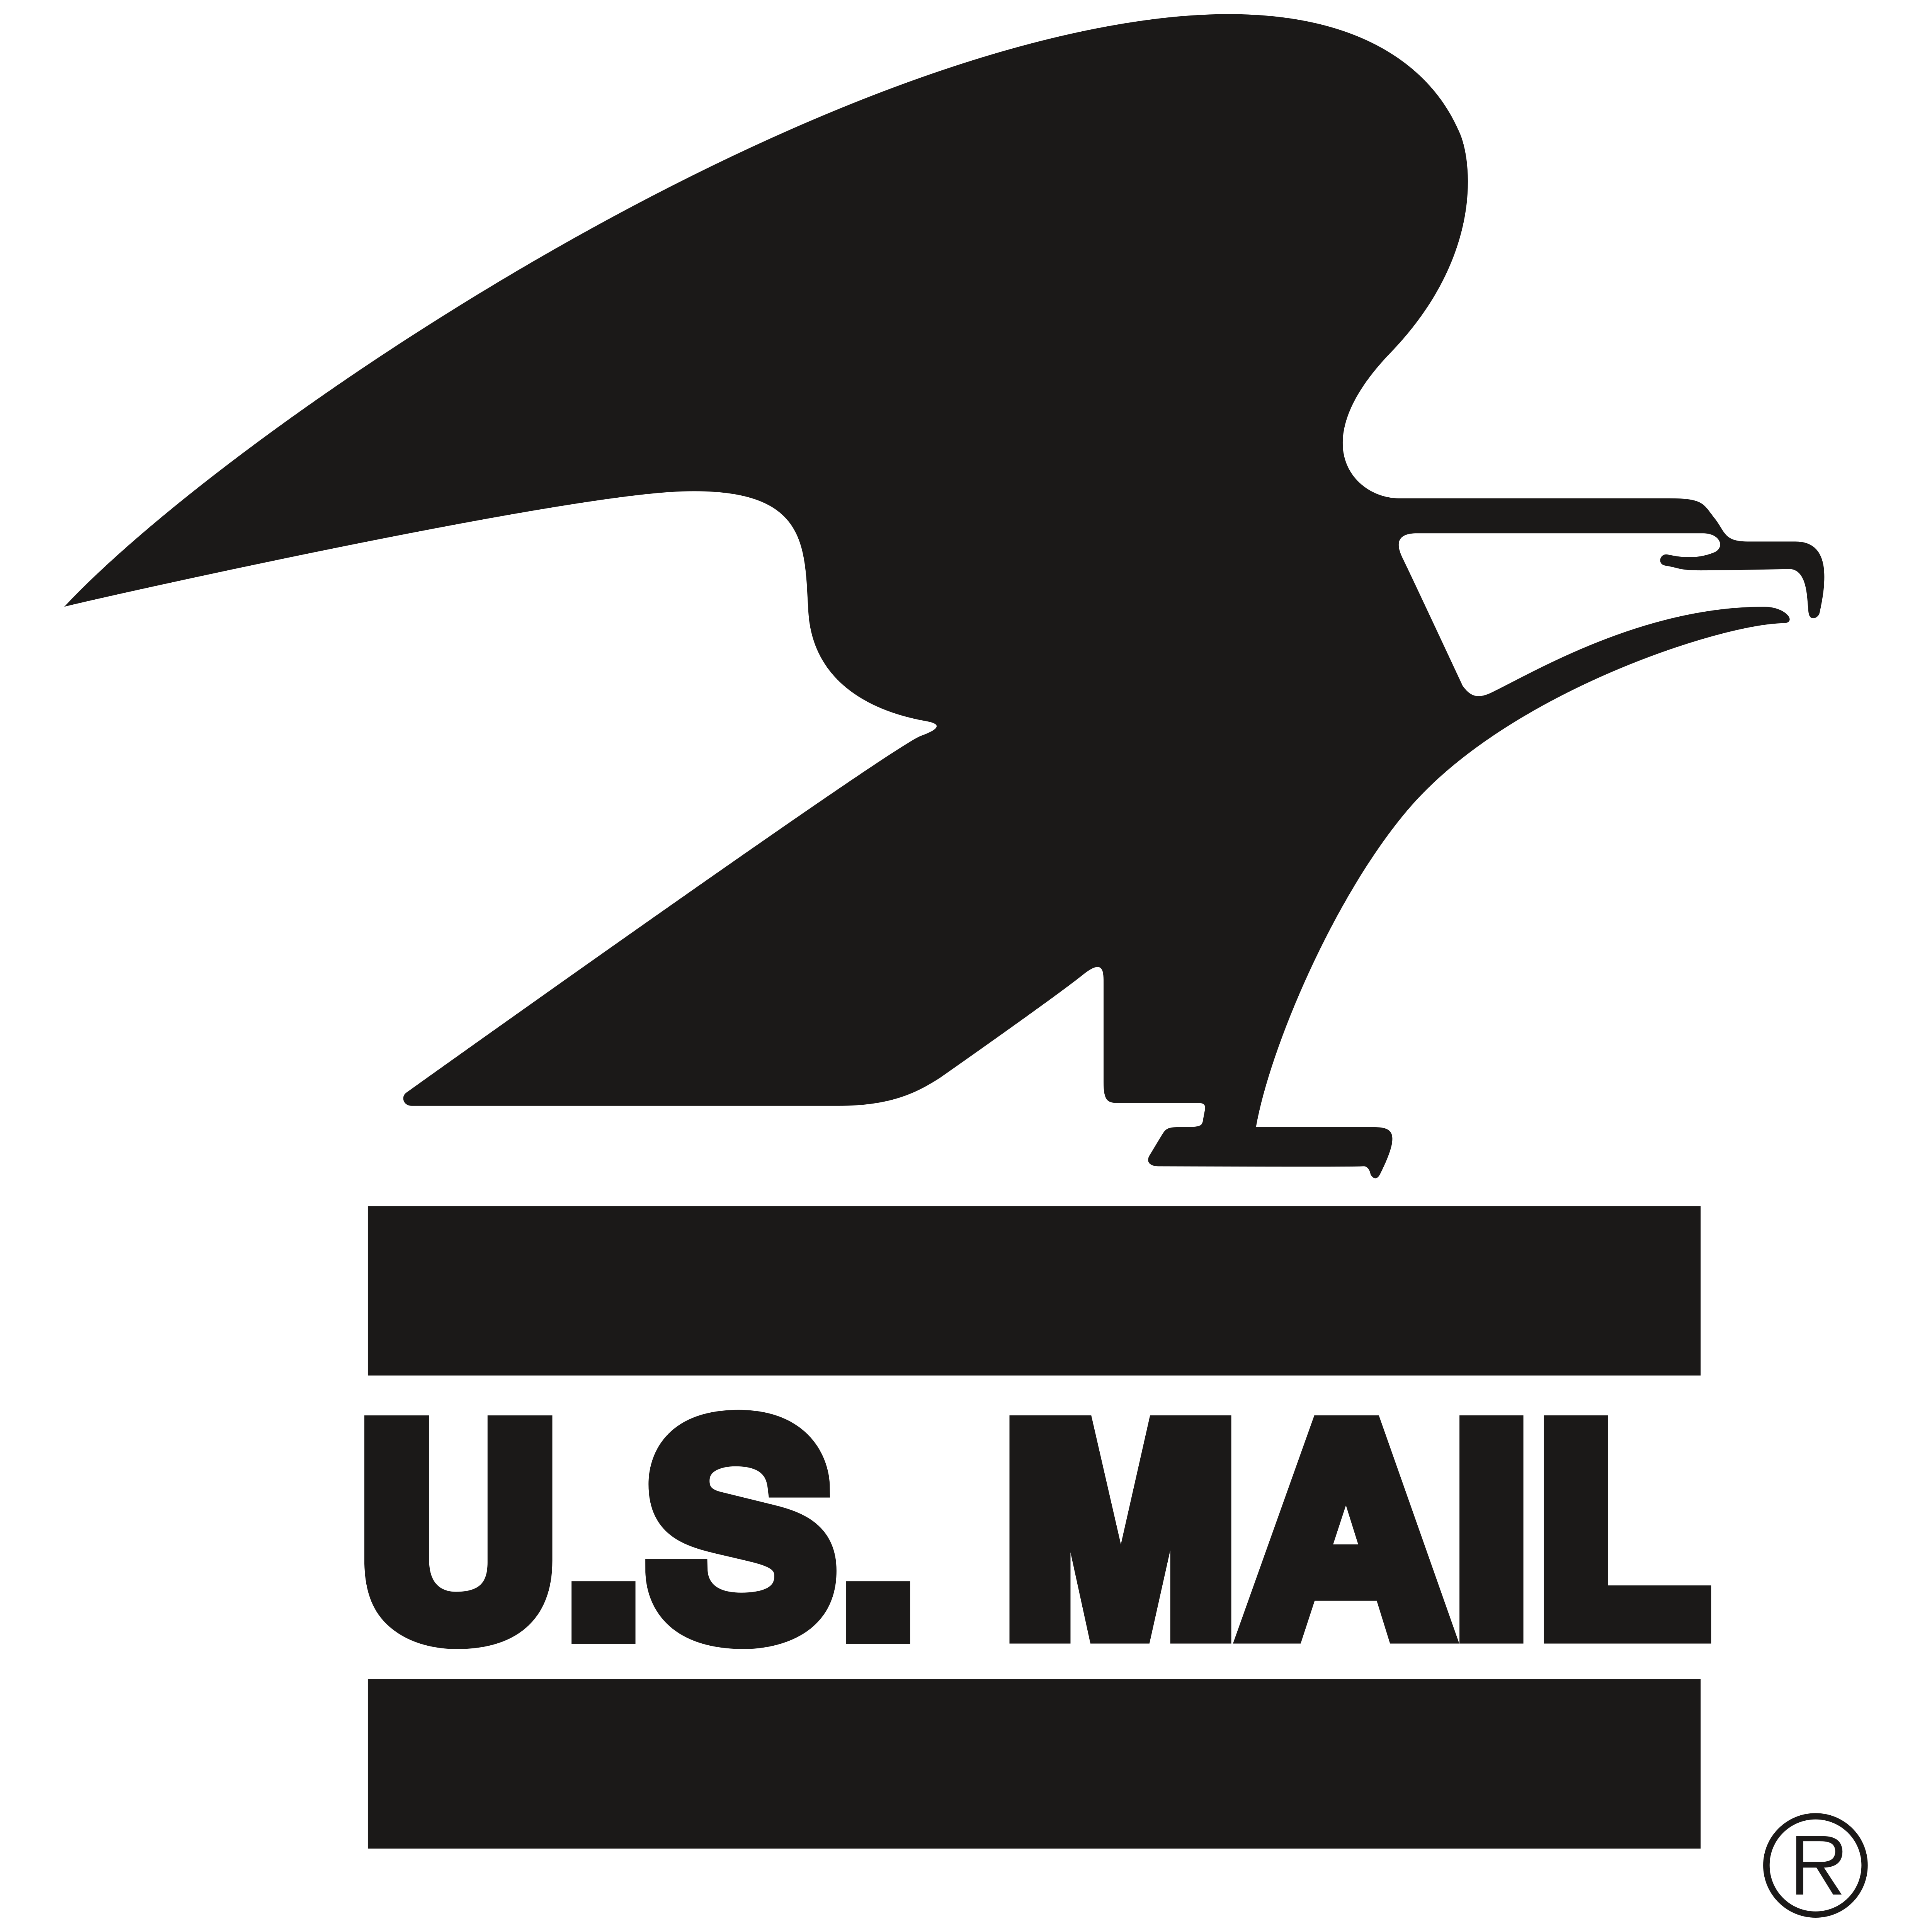 US Mail.